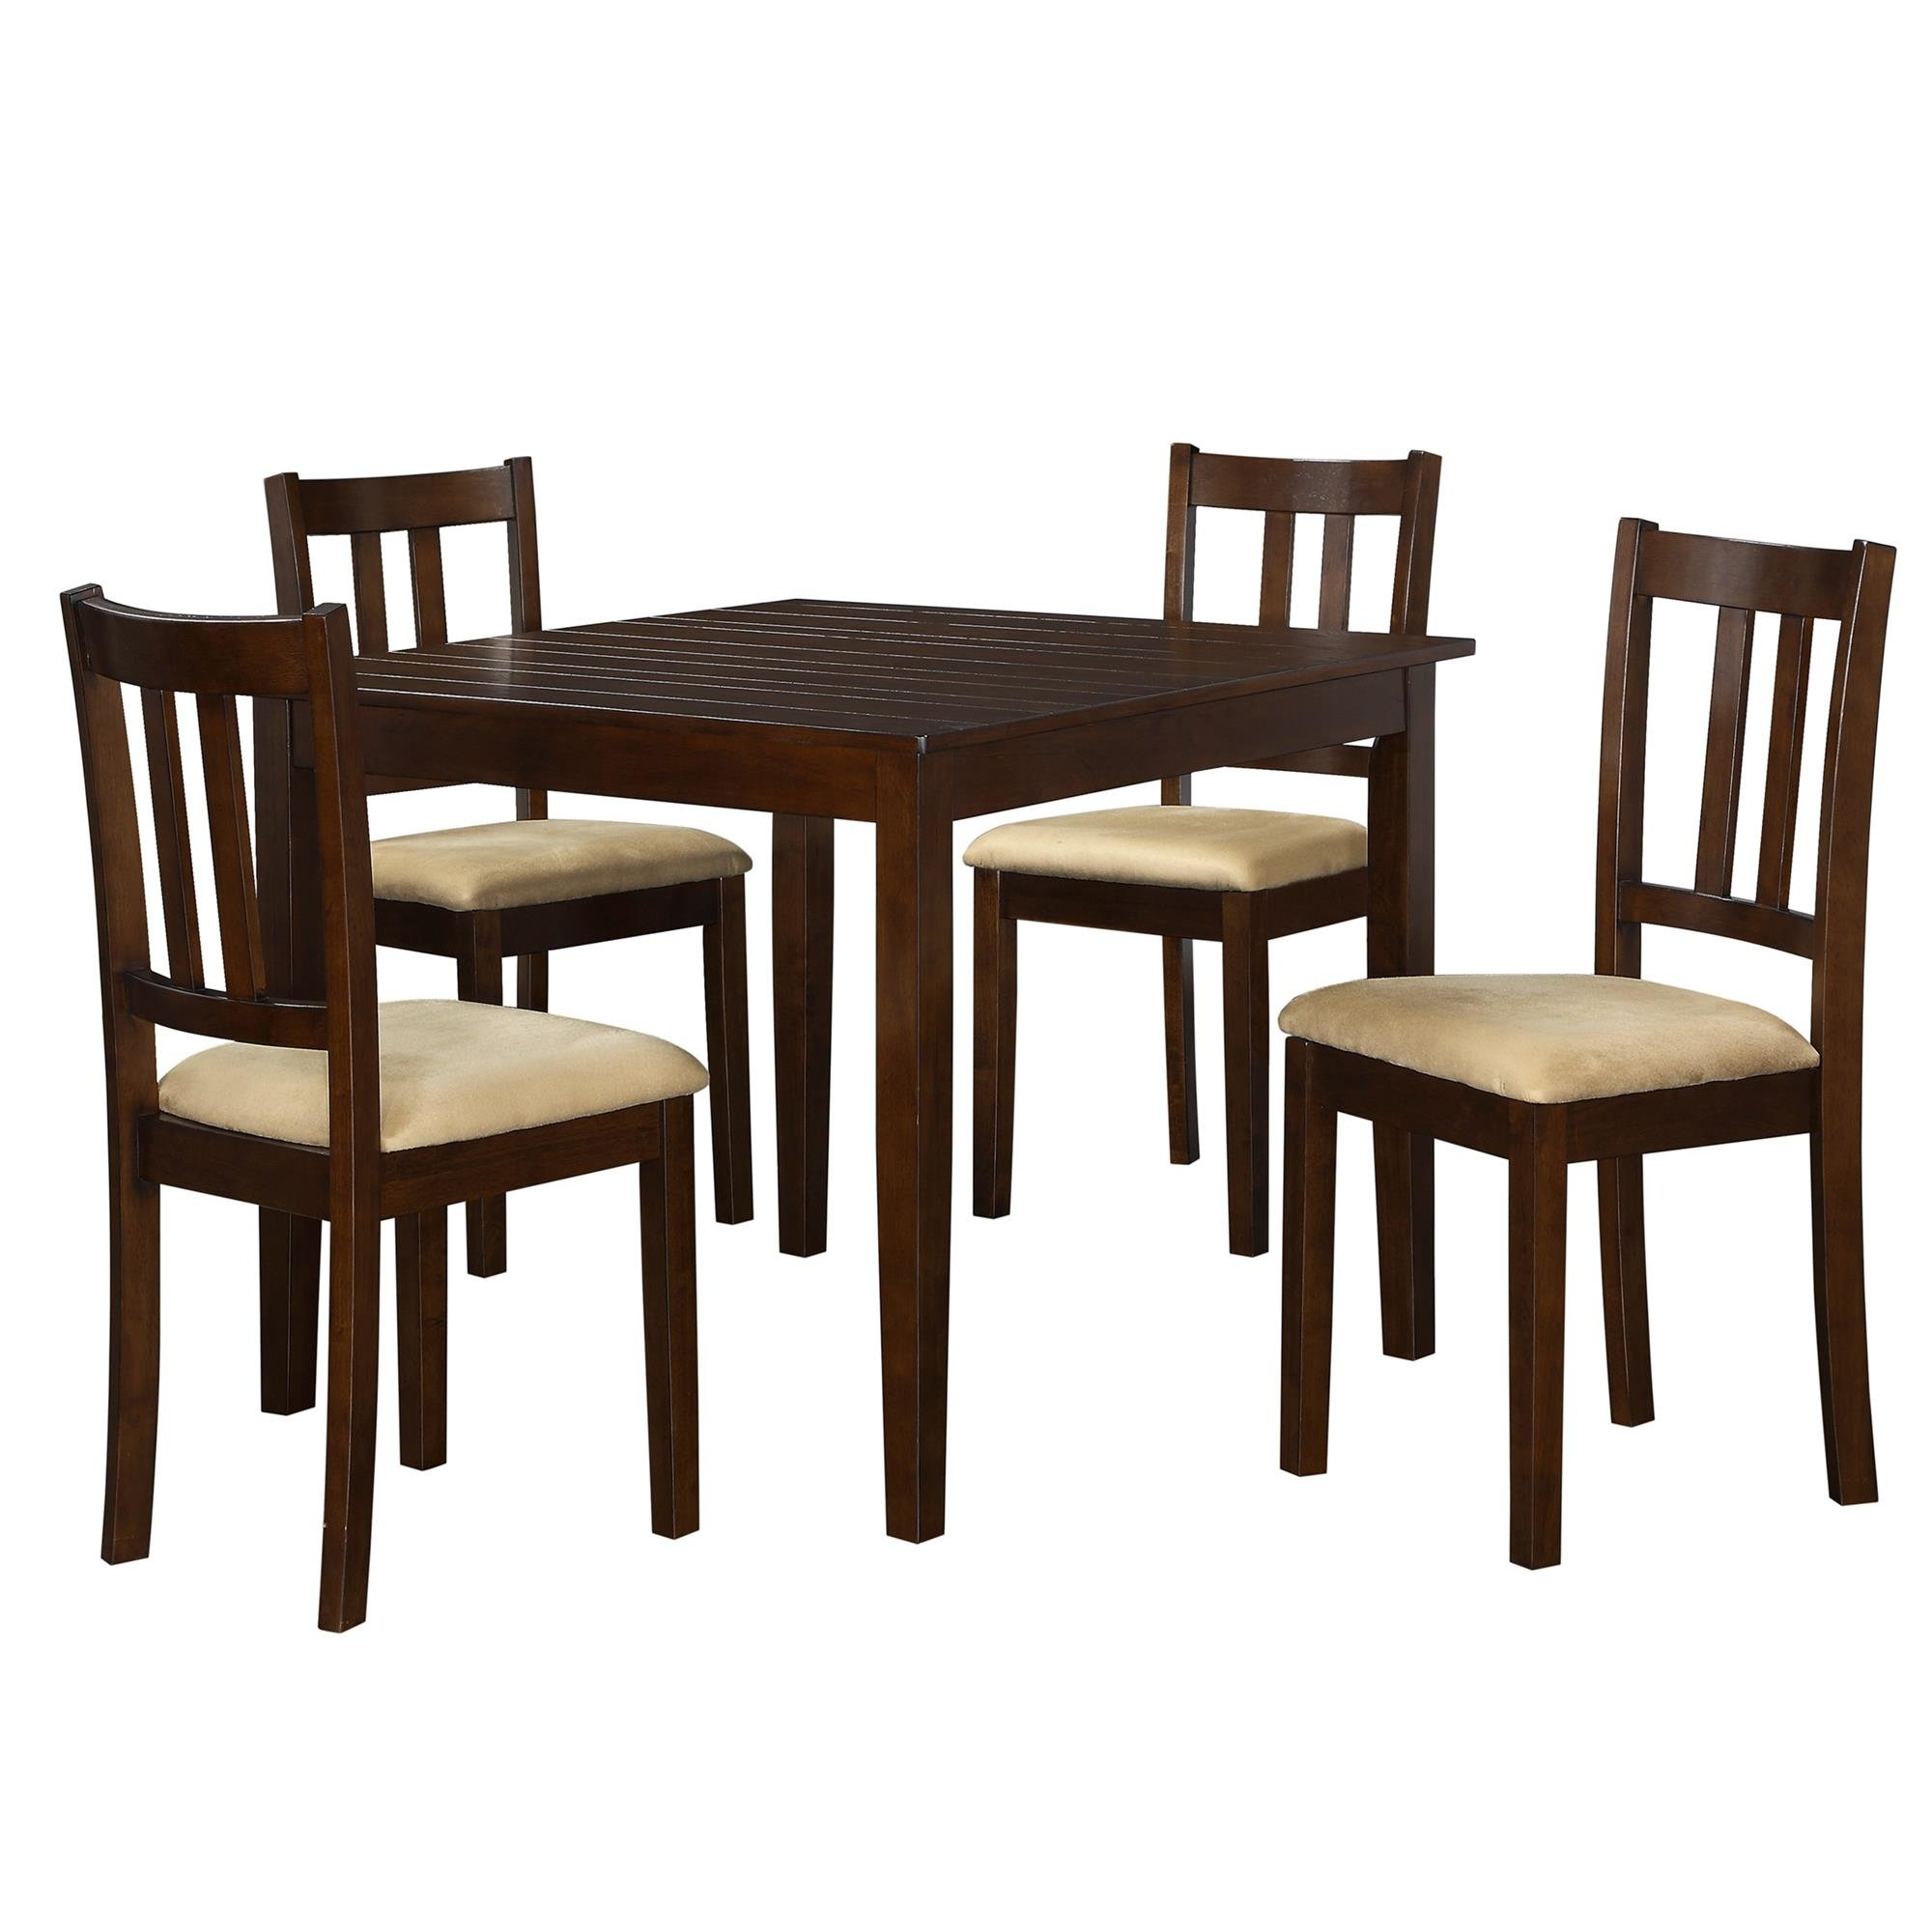 Joss & Main Intended For Tenney 3 Piece Counter Height Dining Sets (#12 of 20)